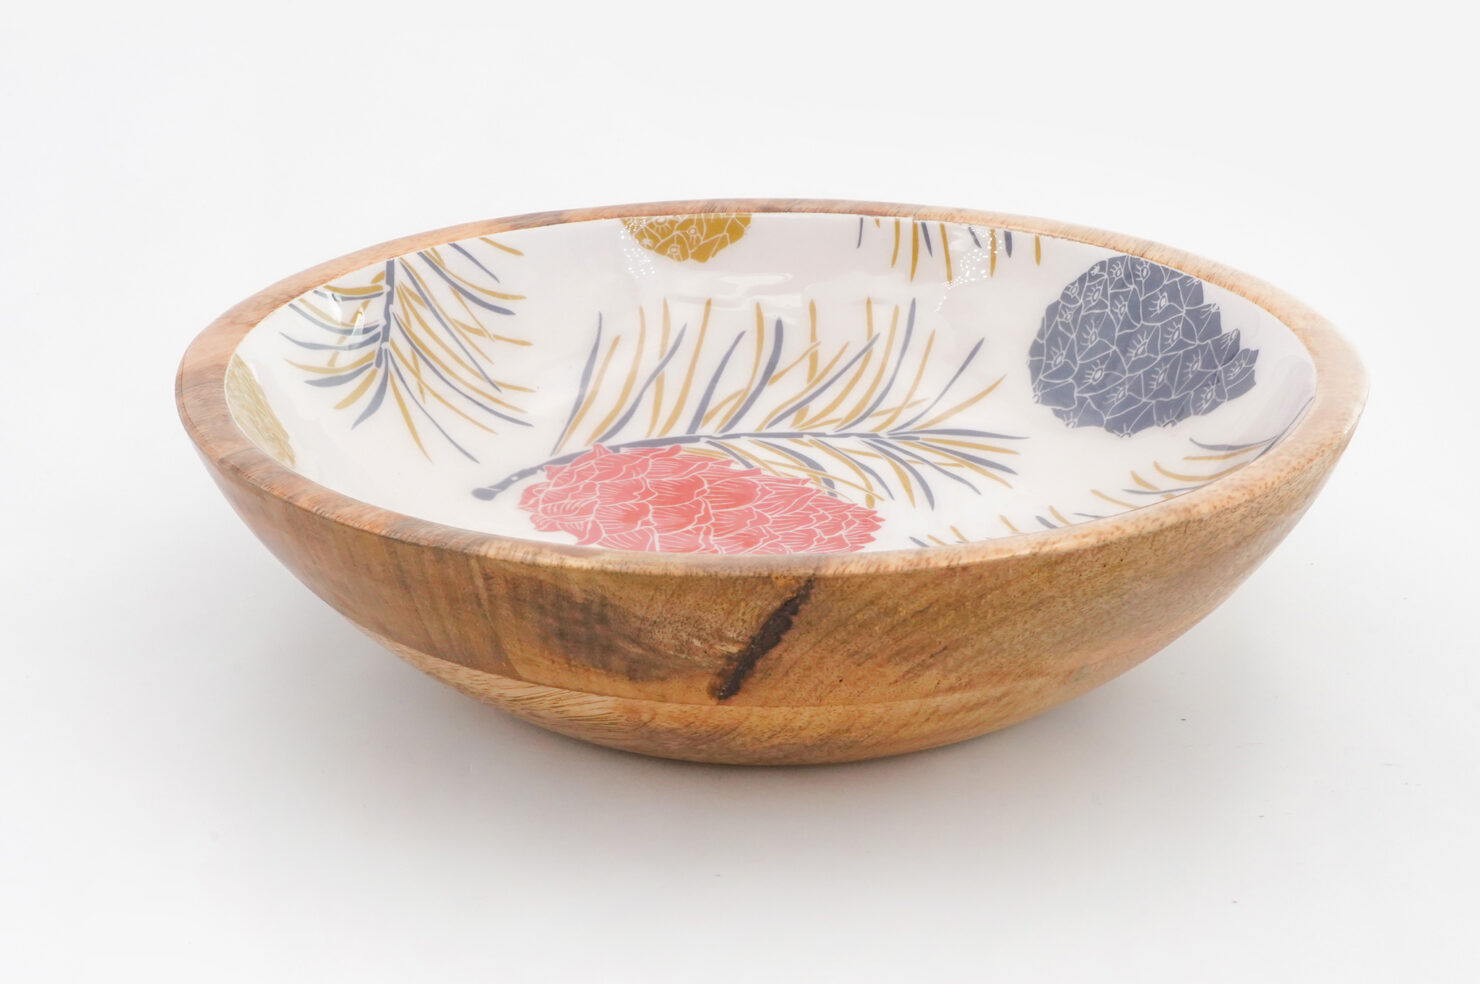 BOWL PINE CORNES MANGO WOOD 25 CM - BY ROOM